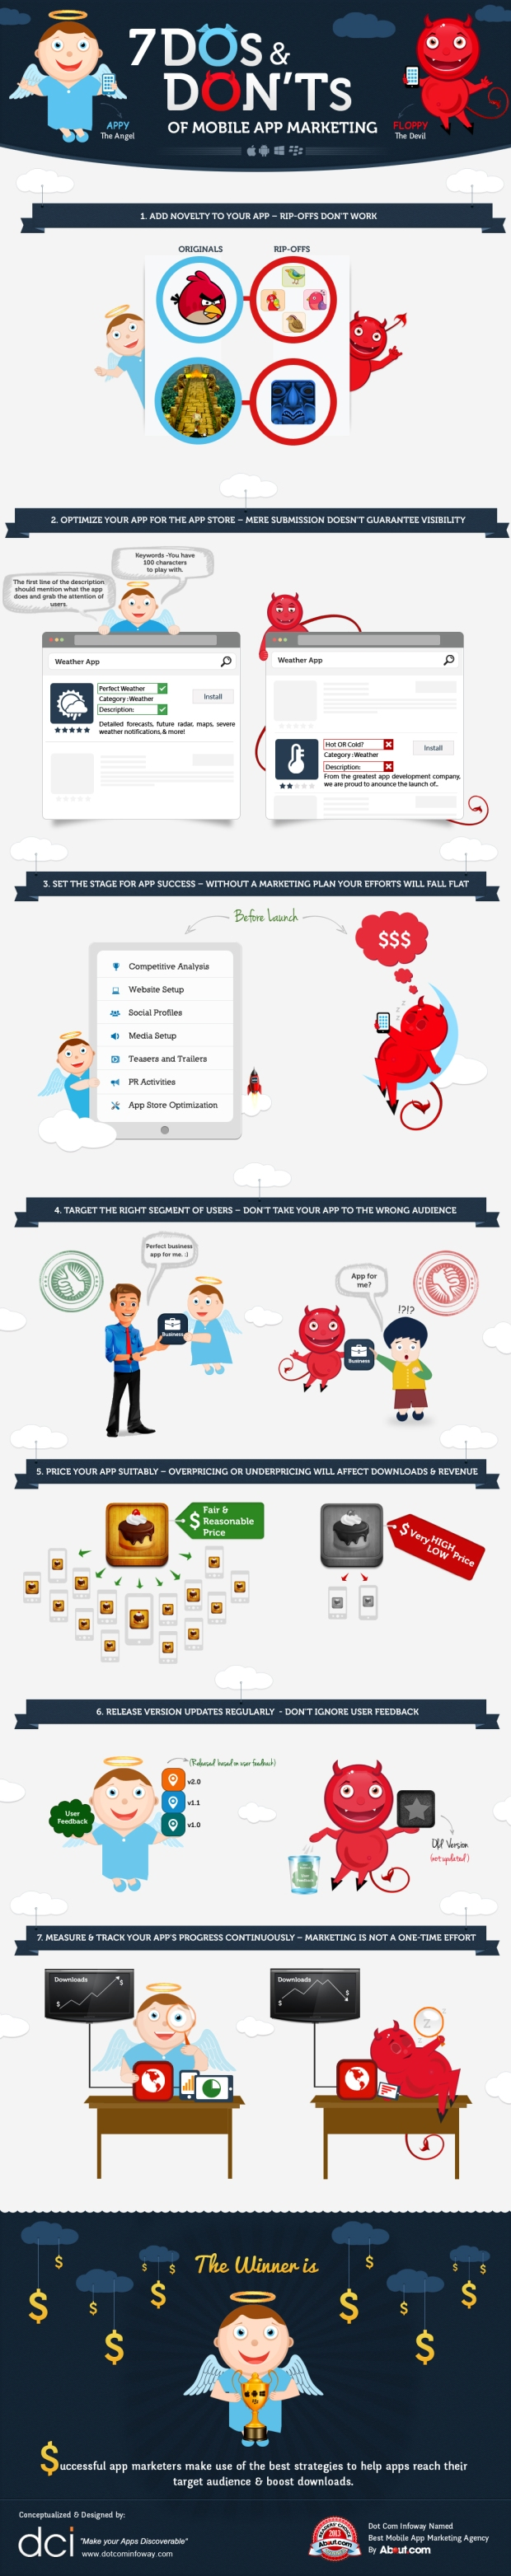 infographic-7-dos-and-donts-of-mobile-app-marketing